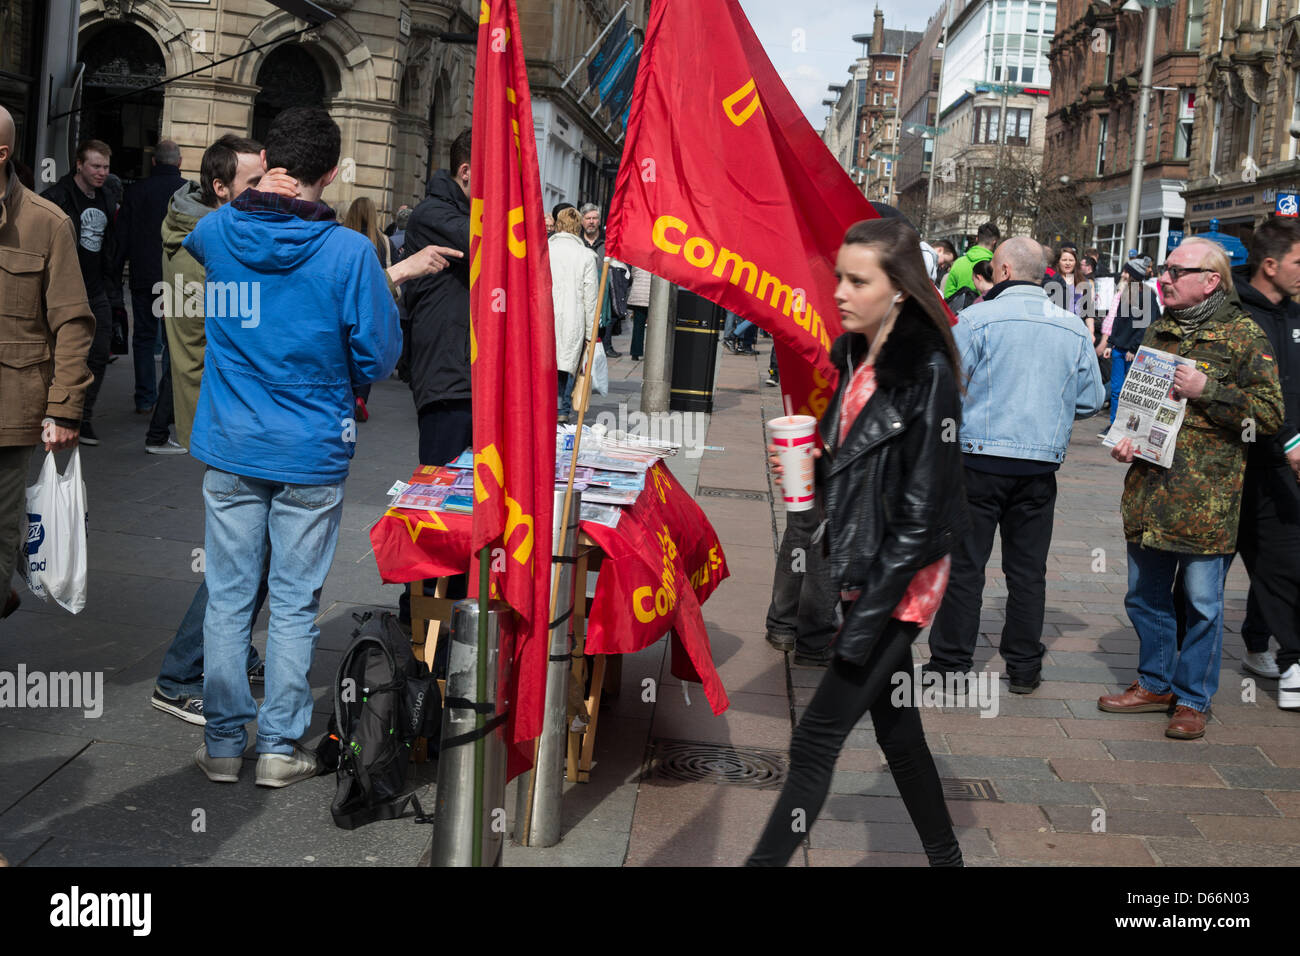 Communist Part canvasing for support in Glasgow, Scotland, on Saturday 13th April 2013. - Stock Image